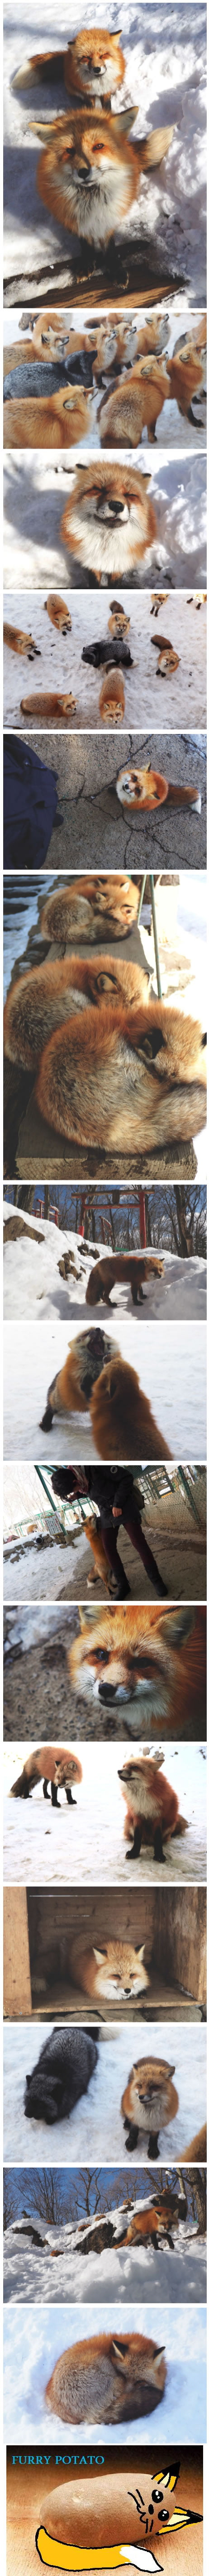 The Fox Village In Japan, The Fluffiest Place On Earth